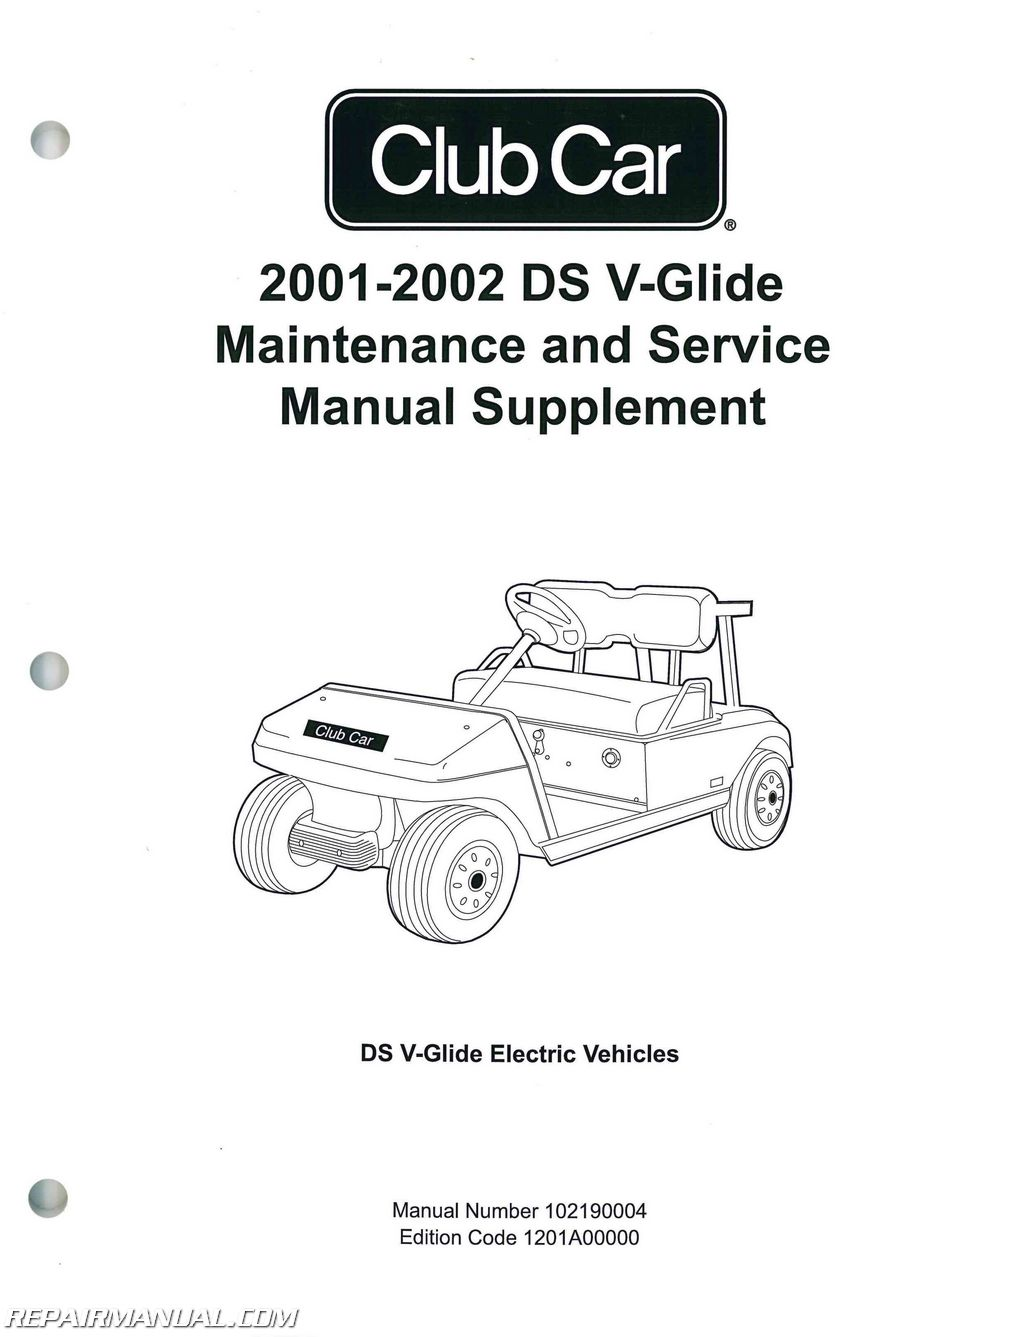 hight resolution of 2001 2002 club car ds v glide golf car maintenance and service diagram 2002 club car schematic